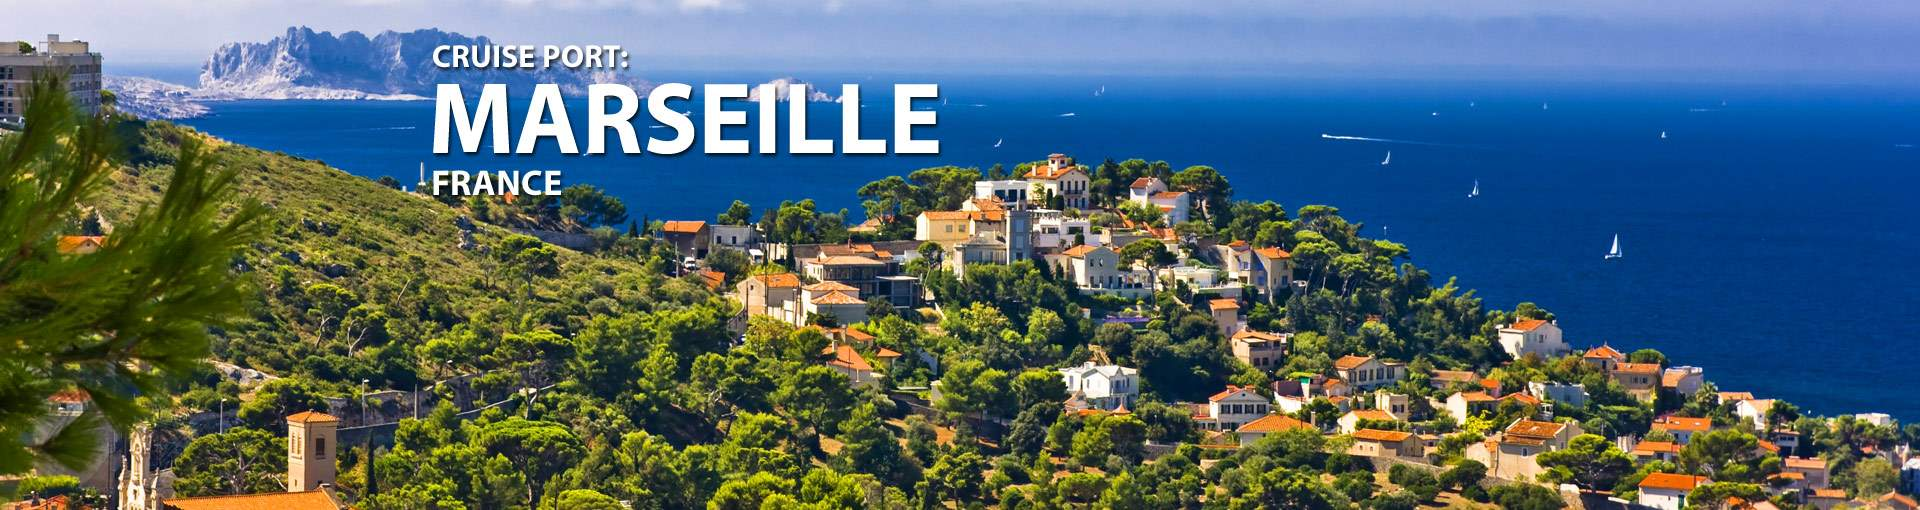 Cruises from Marseille, France